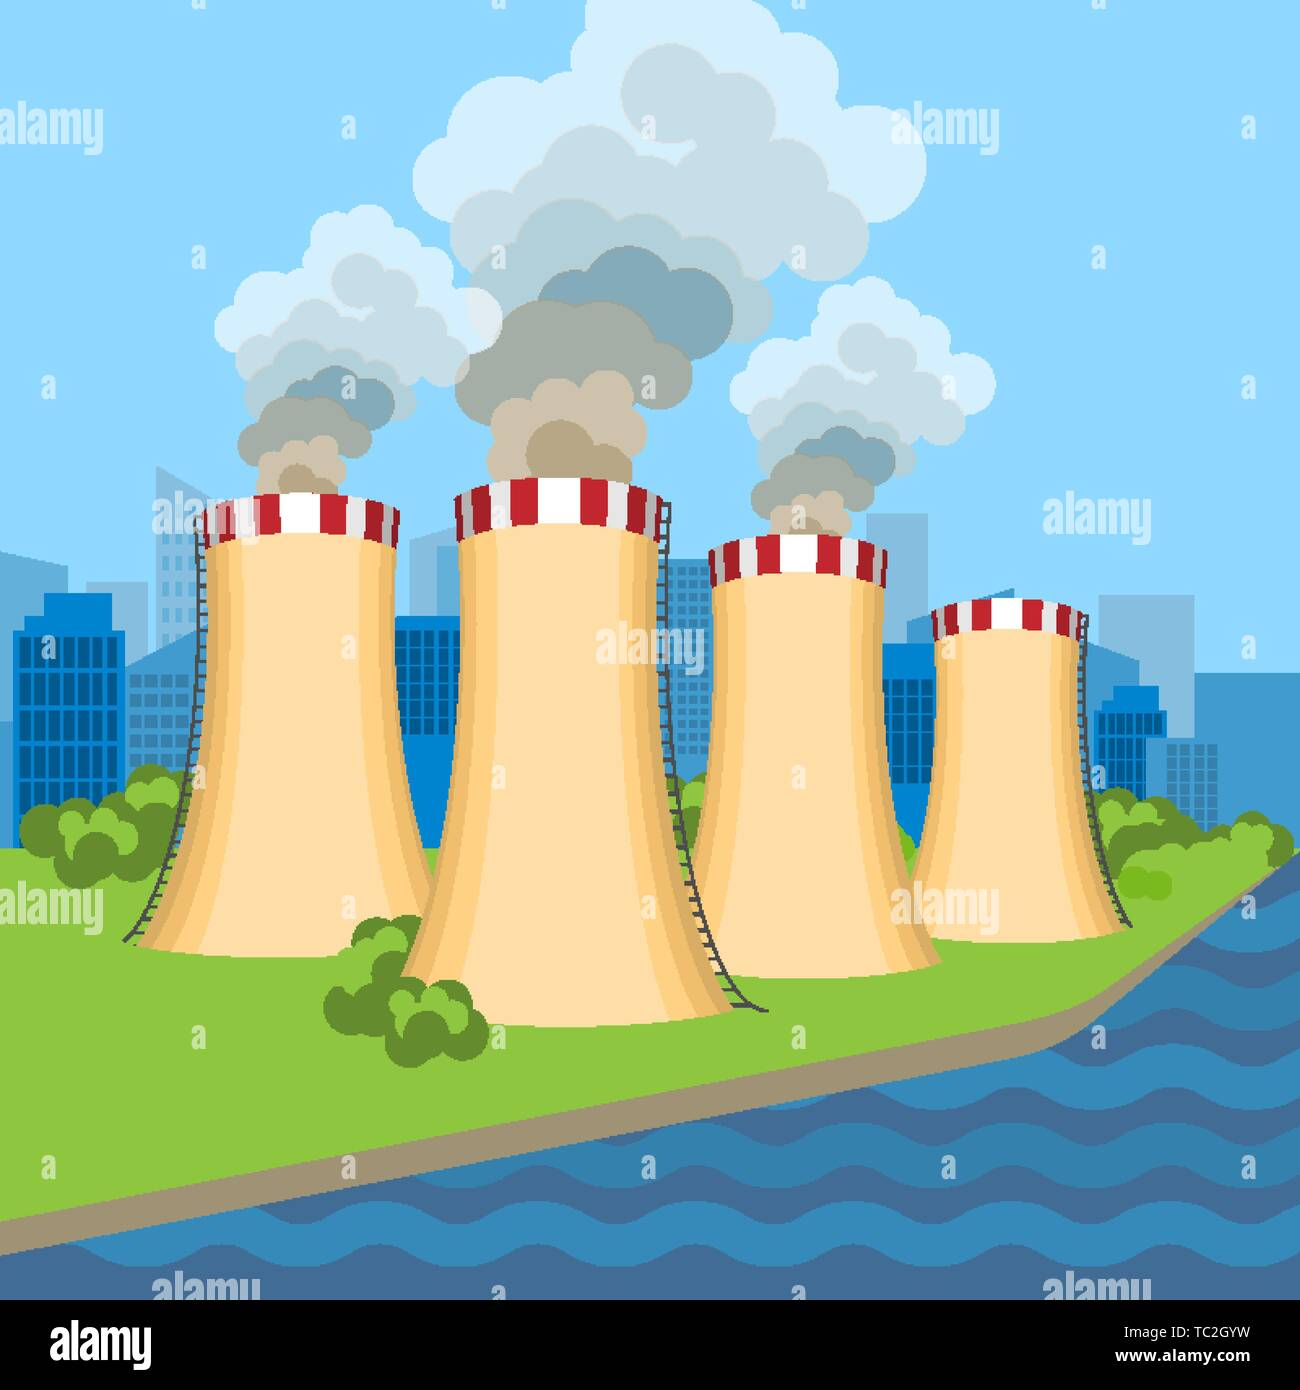 Working nuclear power plant near set of connected towers along flowing blue. Vector illustration of dangerous for environment and people anatomic nucl - Stock Vector